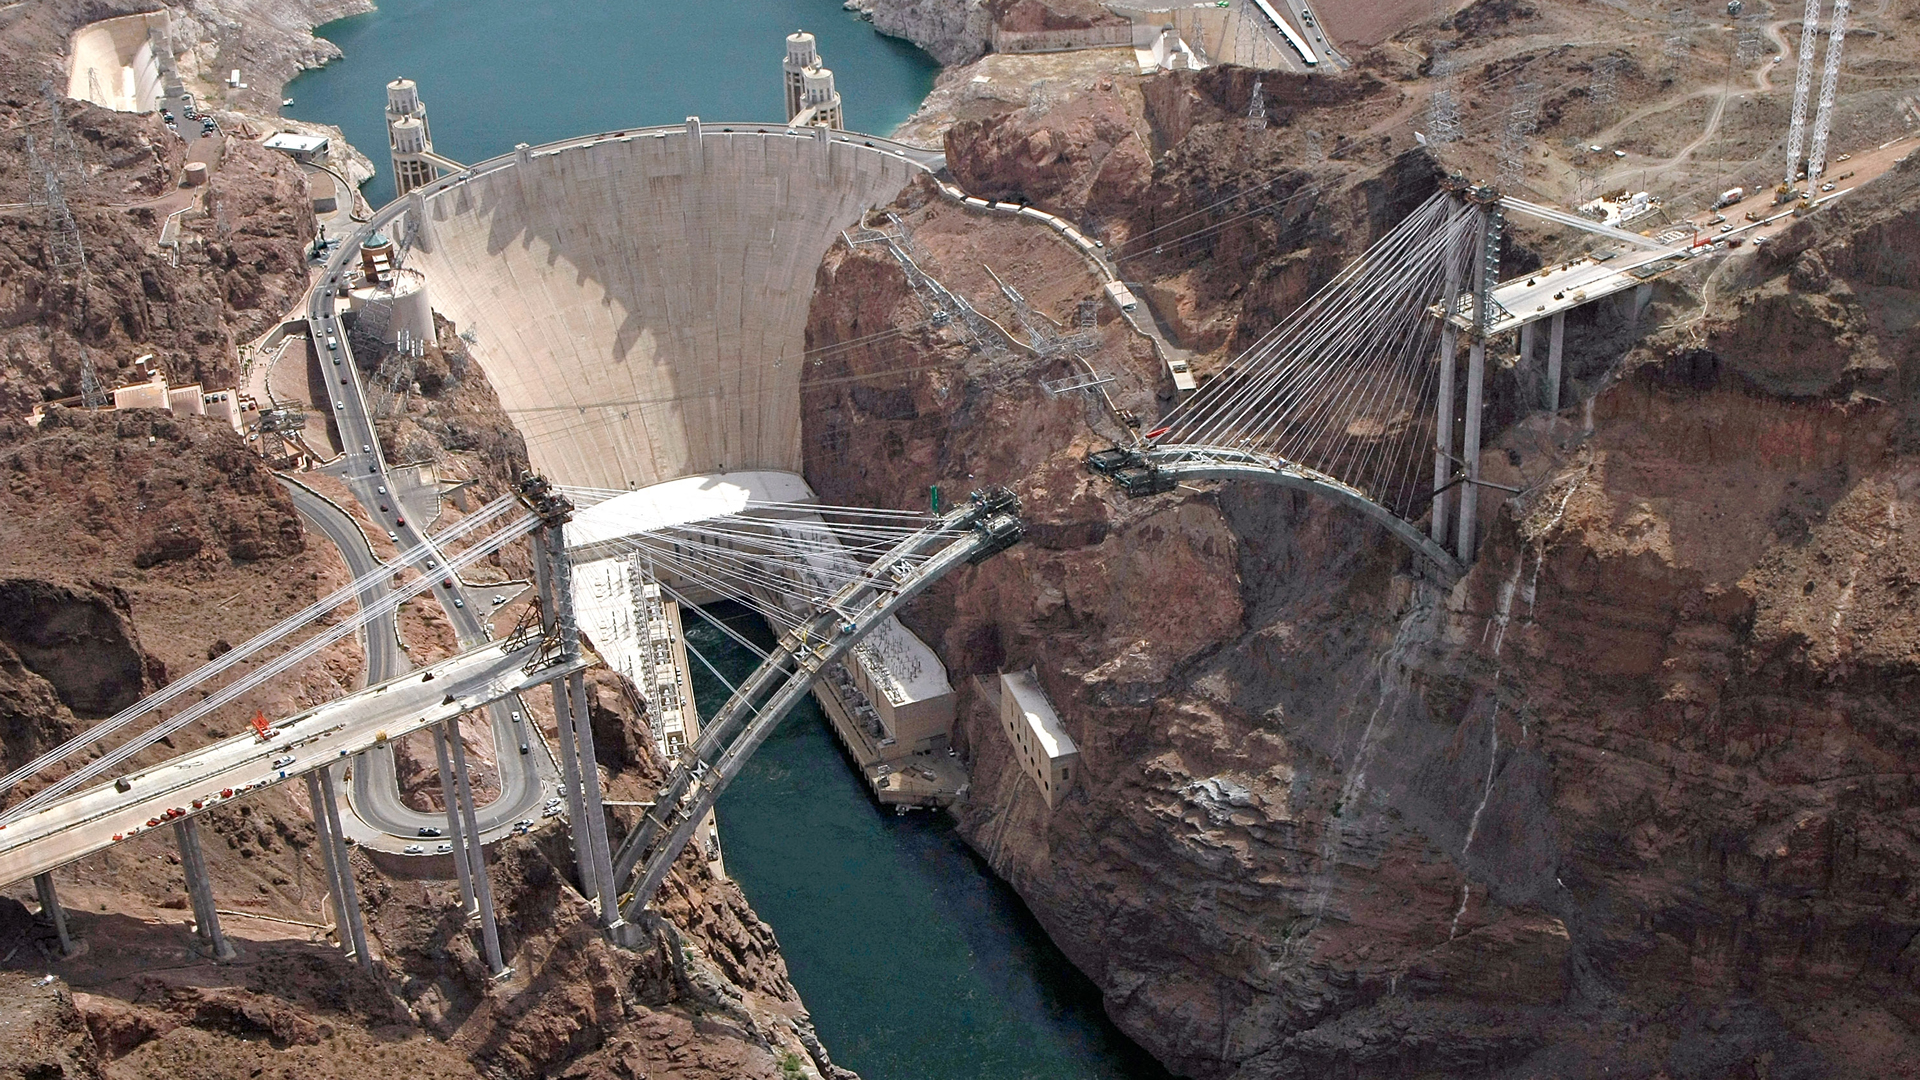 Hoover Dam Wallpaper 14   1920 X 1080 stmednet 1920x1080